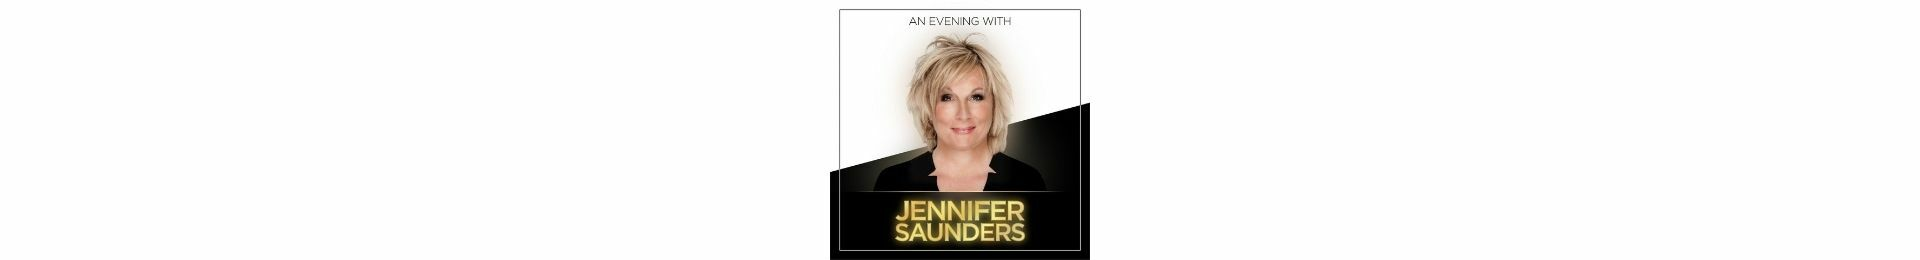 An Evening with Jennifer Saunders banner image